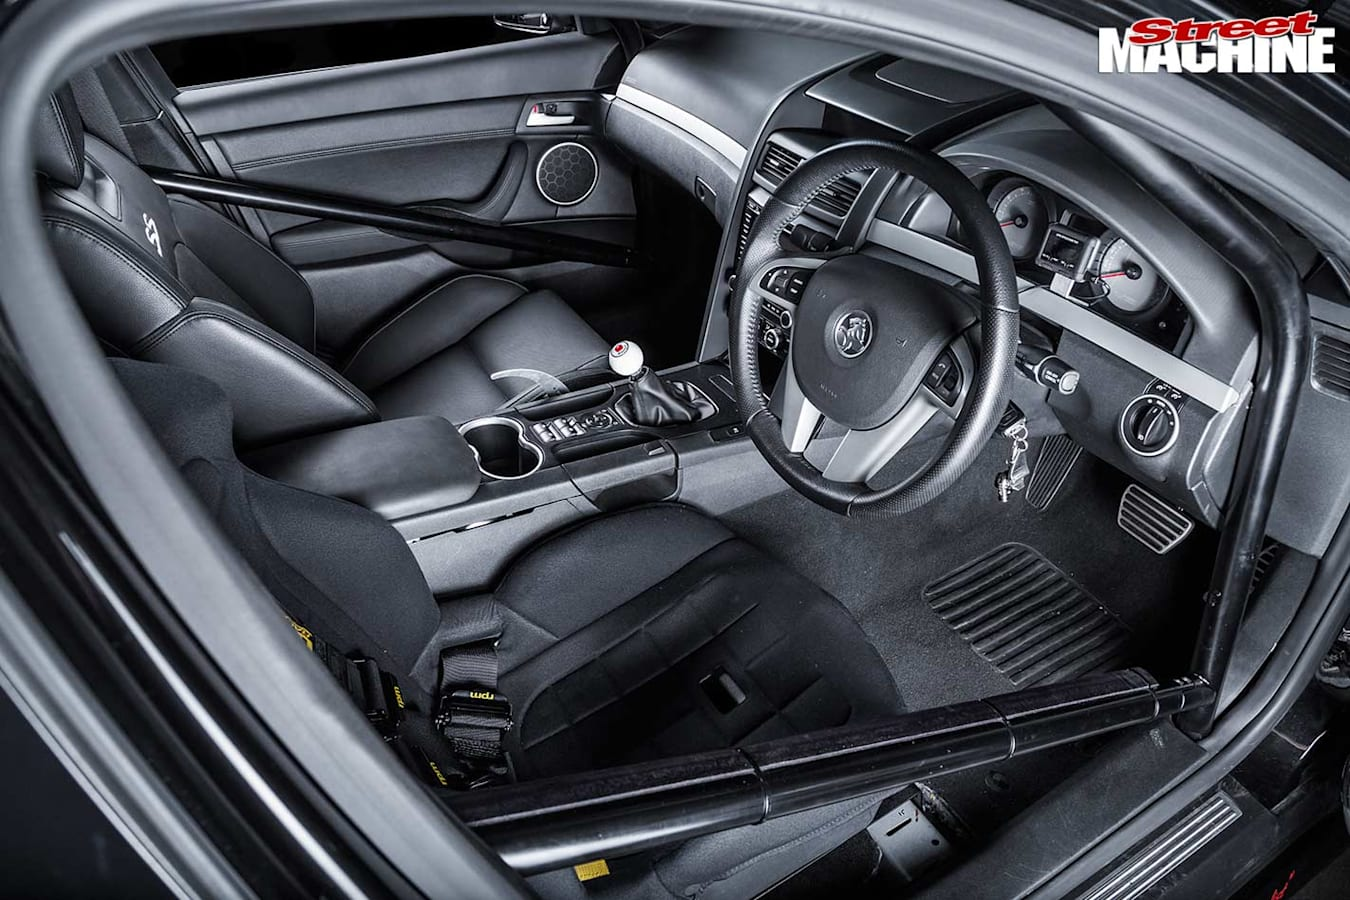 Holden Commodore VE interior front